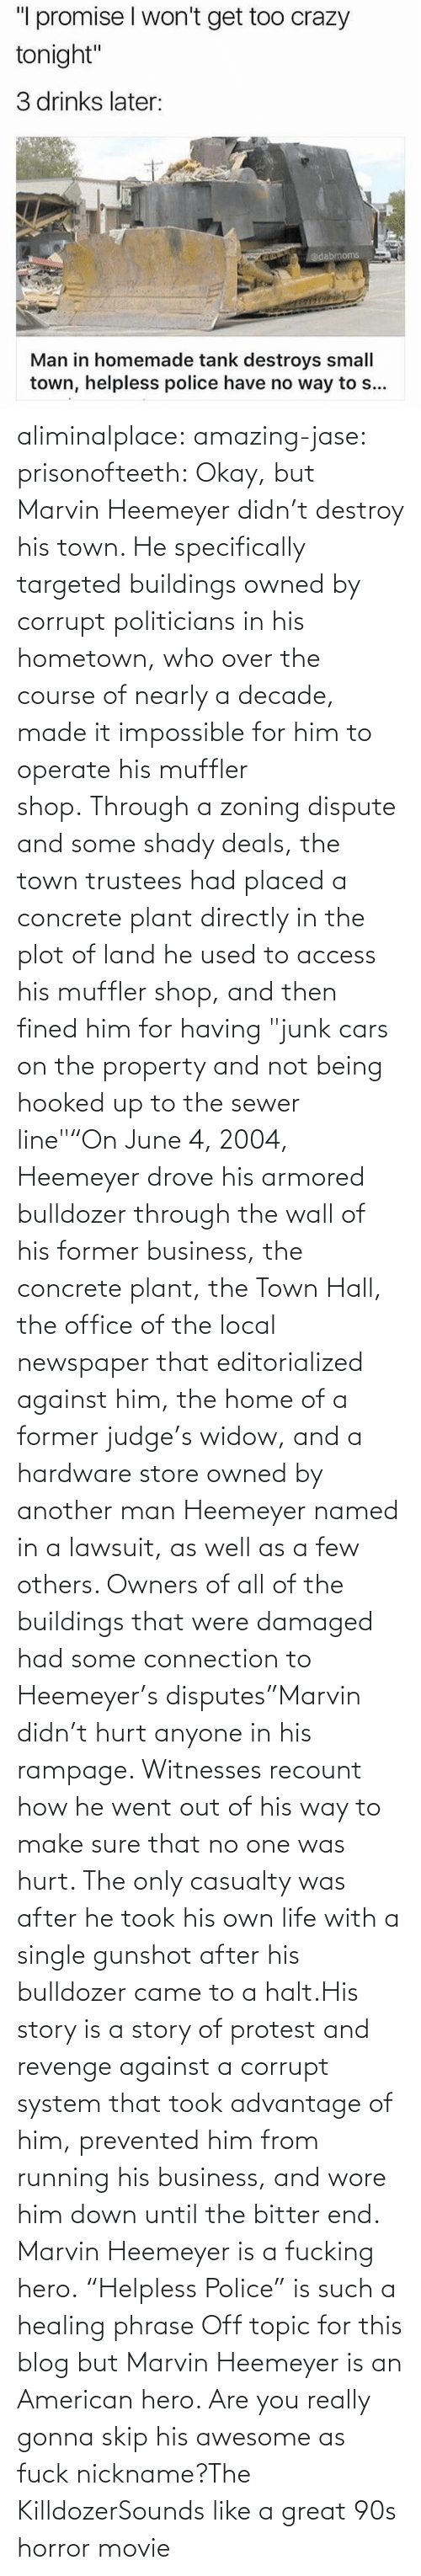 "Cars, Life, and Police: aliminalplace: amazing-jase:  prisonofteeth: Okay, but Marvin Heemeyer didn't destroy his town. He specifically targeted buildings owned by corrupt politicians in his hometown, who over the course of nearly a decade, made it impossible for him to operate his muffler shop. Through a zoning dispute and some shady deals, the town trustees had placed a concrete plant directly in the plot of land he used to access his muffler shop, and then fined him for having ""junk cars on the property and not being hooked up to the sewer line""""On June 4, 2004, Heemeyer drove his armored bulldozer through the wall of his former business, the concrete plant, the Town Hall, the office of the local newspaper that editorialized against him, the home of a former judge's widow, and a hardware store owned by another man Heemeyer named in a lawsuit, as well as a few others. Owners of all of the buildings that were damaged had some connection to Heemeyer's disputes""Marvin didn't hurt anyone in his rampage. Witnesses recount how he went out of his way to make sure that no one was hurt. The only casualty was after he took his own life with a single gunshot after his bulldozer came to a halt.His story is a story of protest and revenge against a corrupt system that took advantage of him, prevented him from running his business, and wore him down until the bitter end. Marvin Heemeyer is a fucking hero. ""Helpless Police"" is such a healing phrase    Off topic for this blog but Marvin Heemeyer is an American hero.     Are you really gonna skip his awesome as fuck nickname?The KilldozerSounds like a great 90s horror movie"